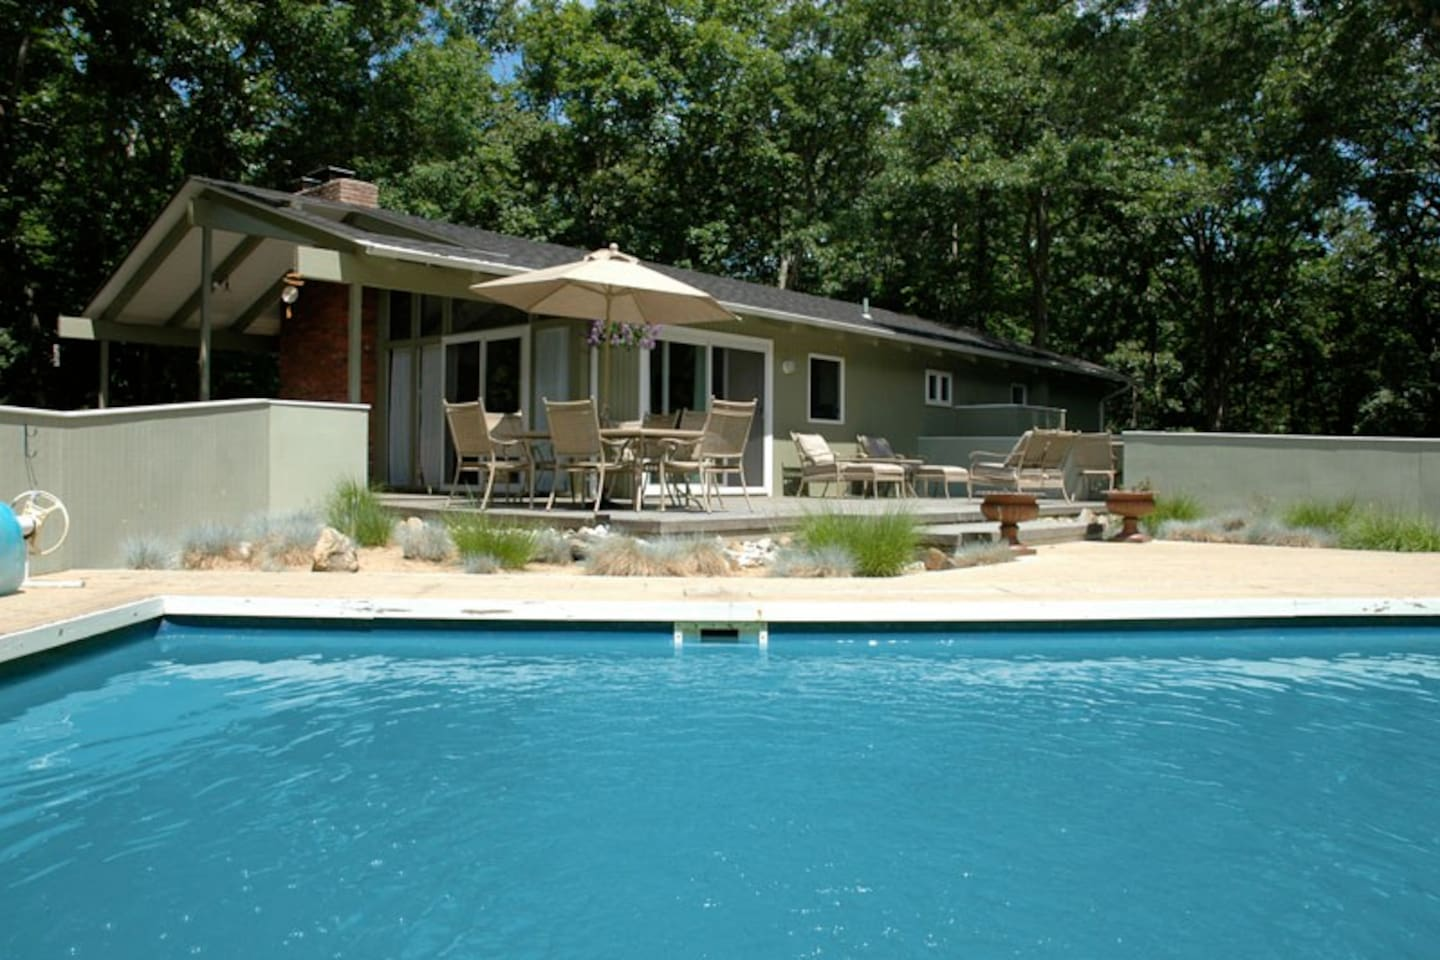 Huge Deck with 50'x20' Lap Pool (4' deep w/ shallow area @ other end)